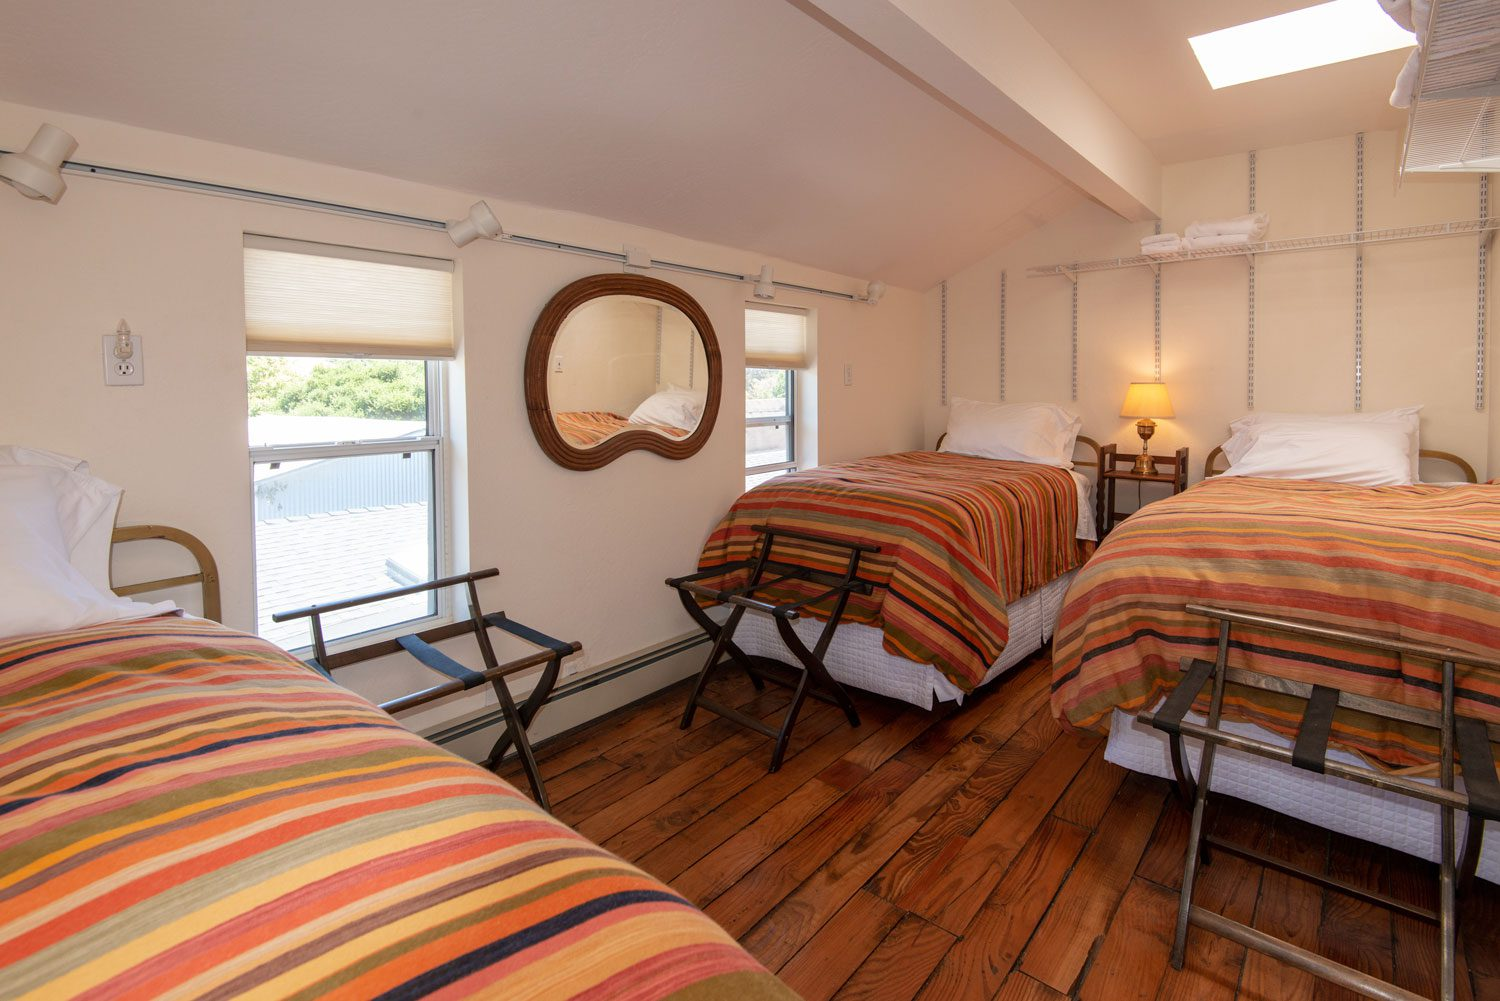 Point Reyes National Seashore Lodging for Groups traveling with Horses  Full Kitchens + Suites